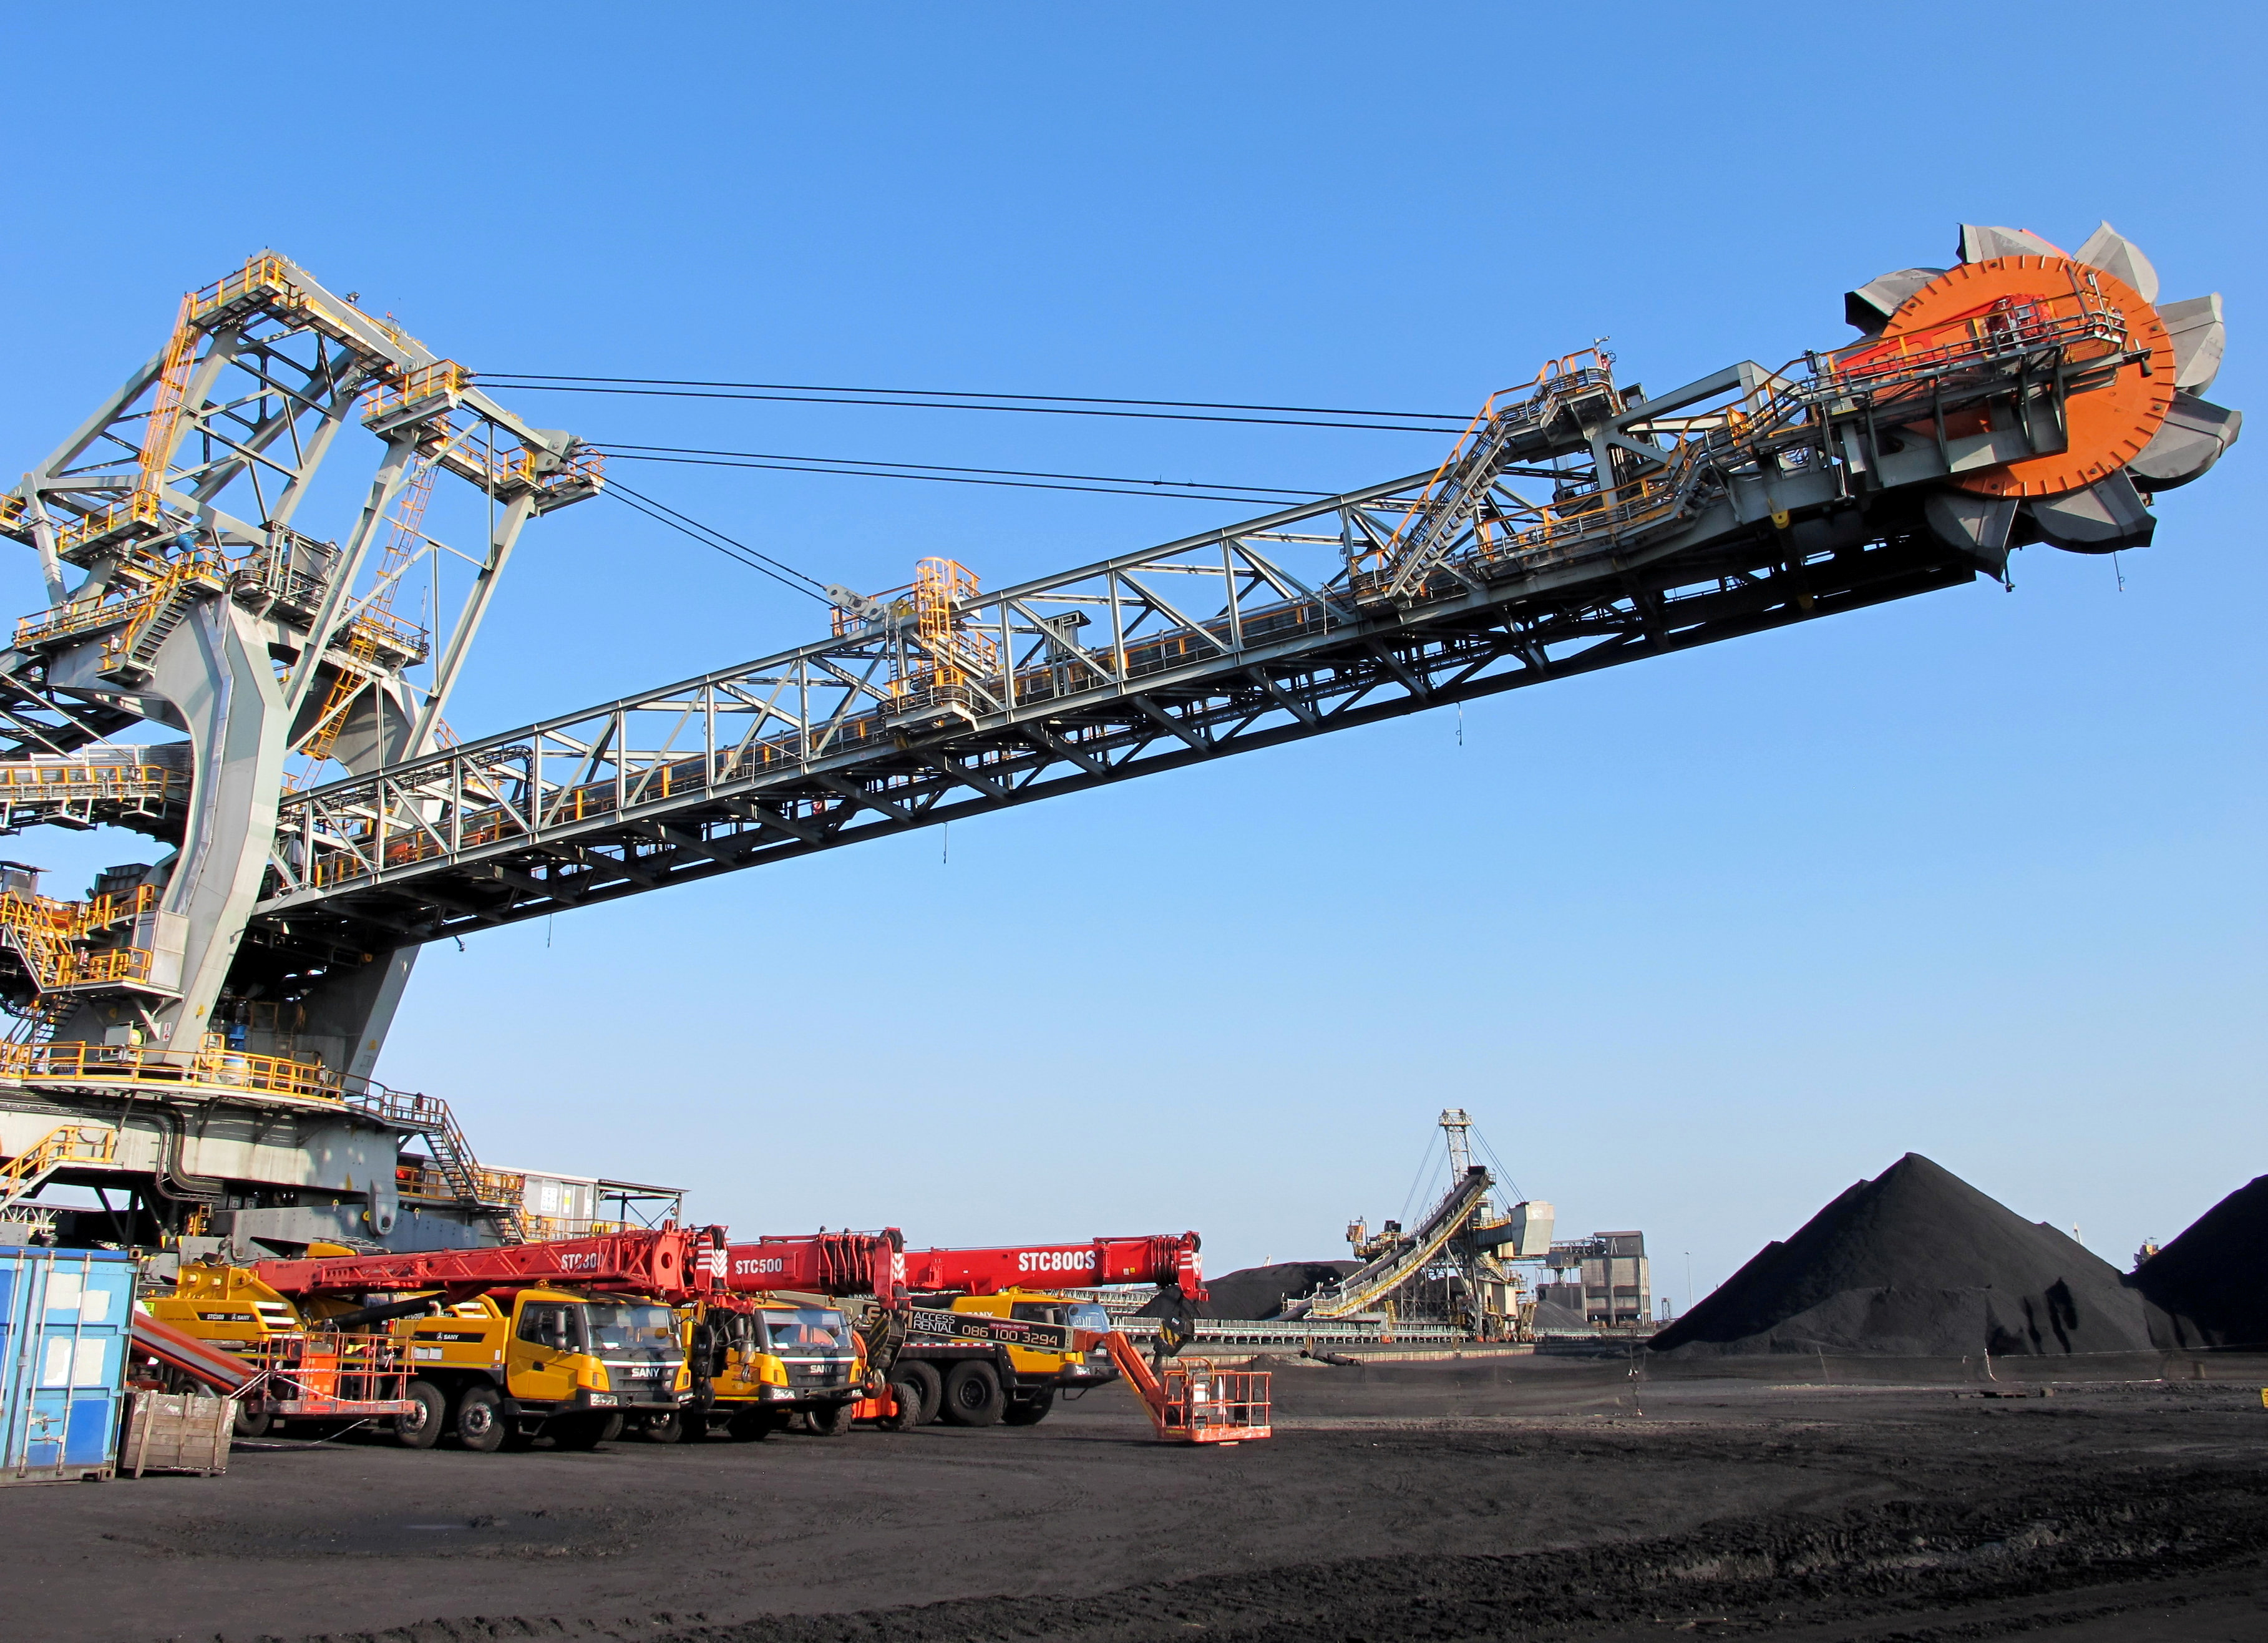 One of the two new rail-mounted stacker reclaimers which scoop up and transfer coal into and out of the yard is seen at Africa's largest coal export facility, the Richards Bay Coal Terminal, Richards Bay harbour, South Africa, June 21, 2018. REUTERS/Tanisha Heiberg/File Photo